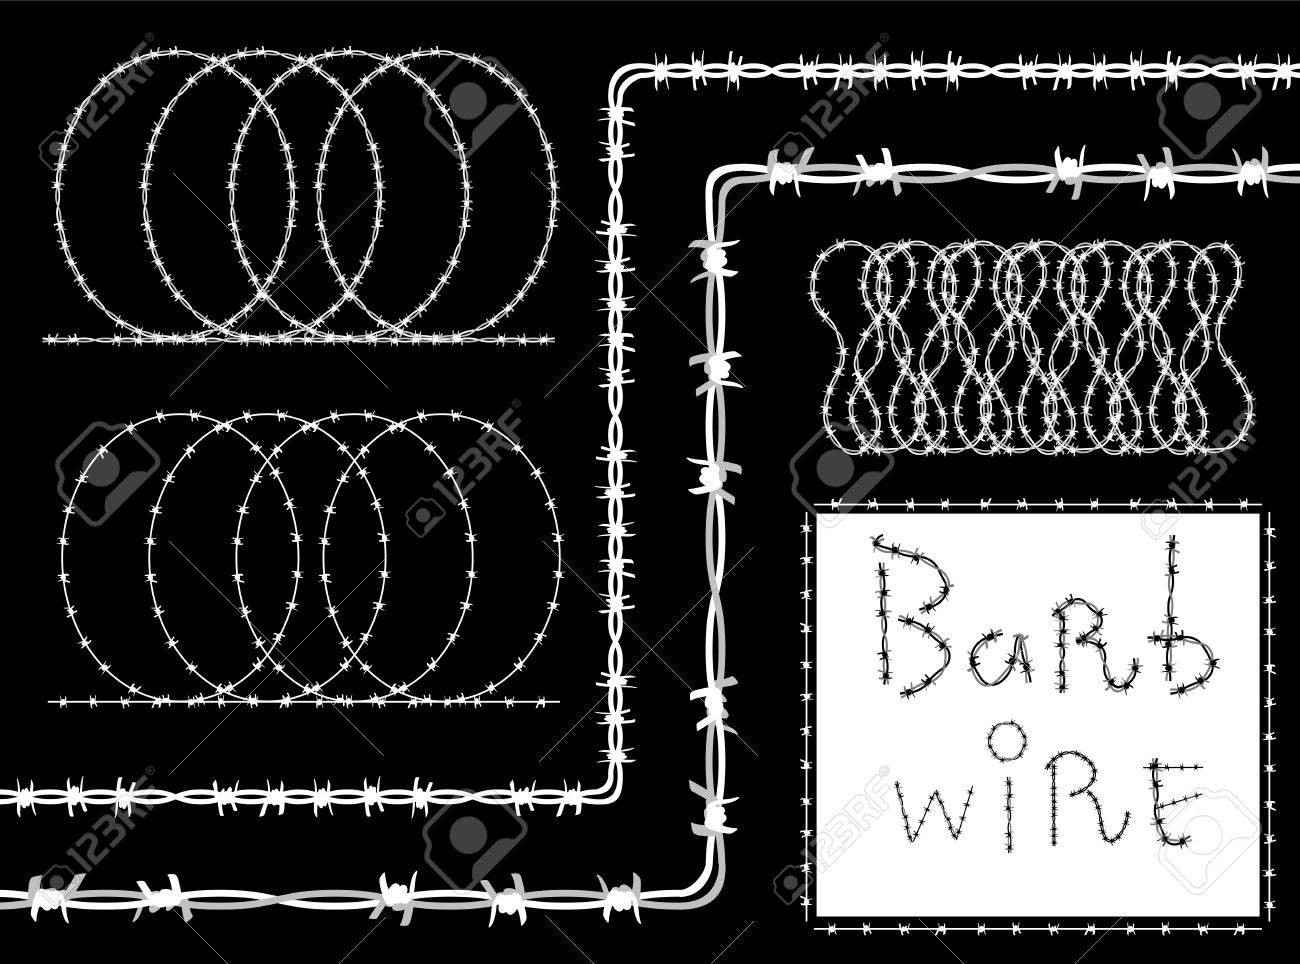 Barbed wire vector brush - Barb Wire Barbed Wire Border Set White Silhouette On Black Background Vector